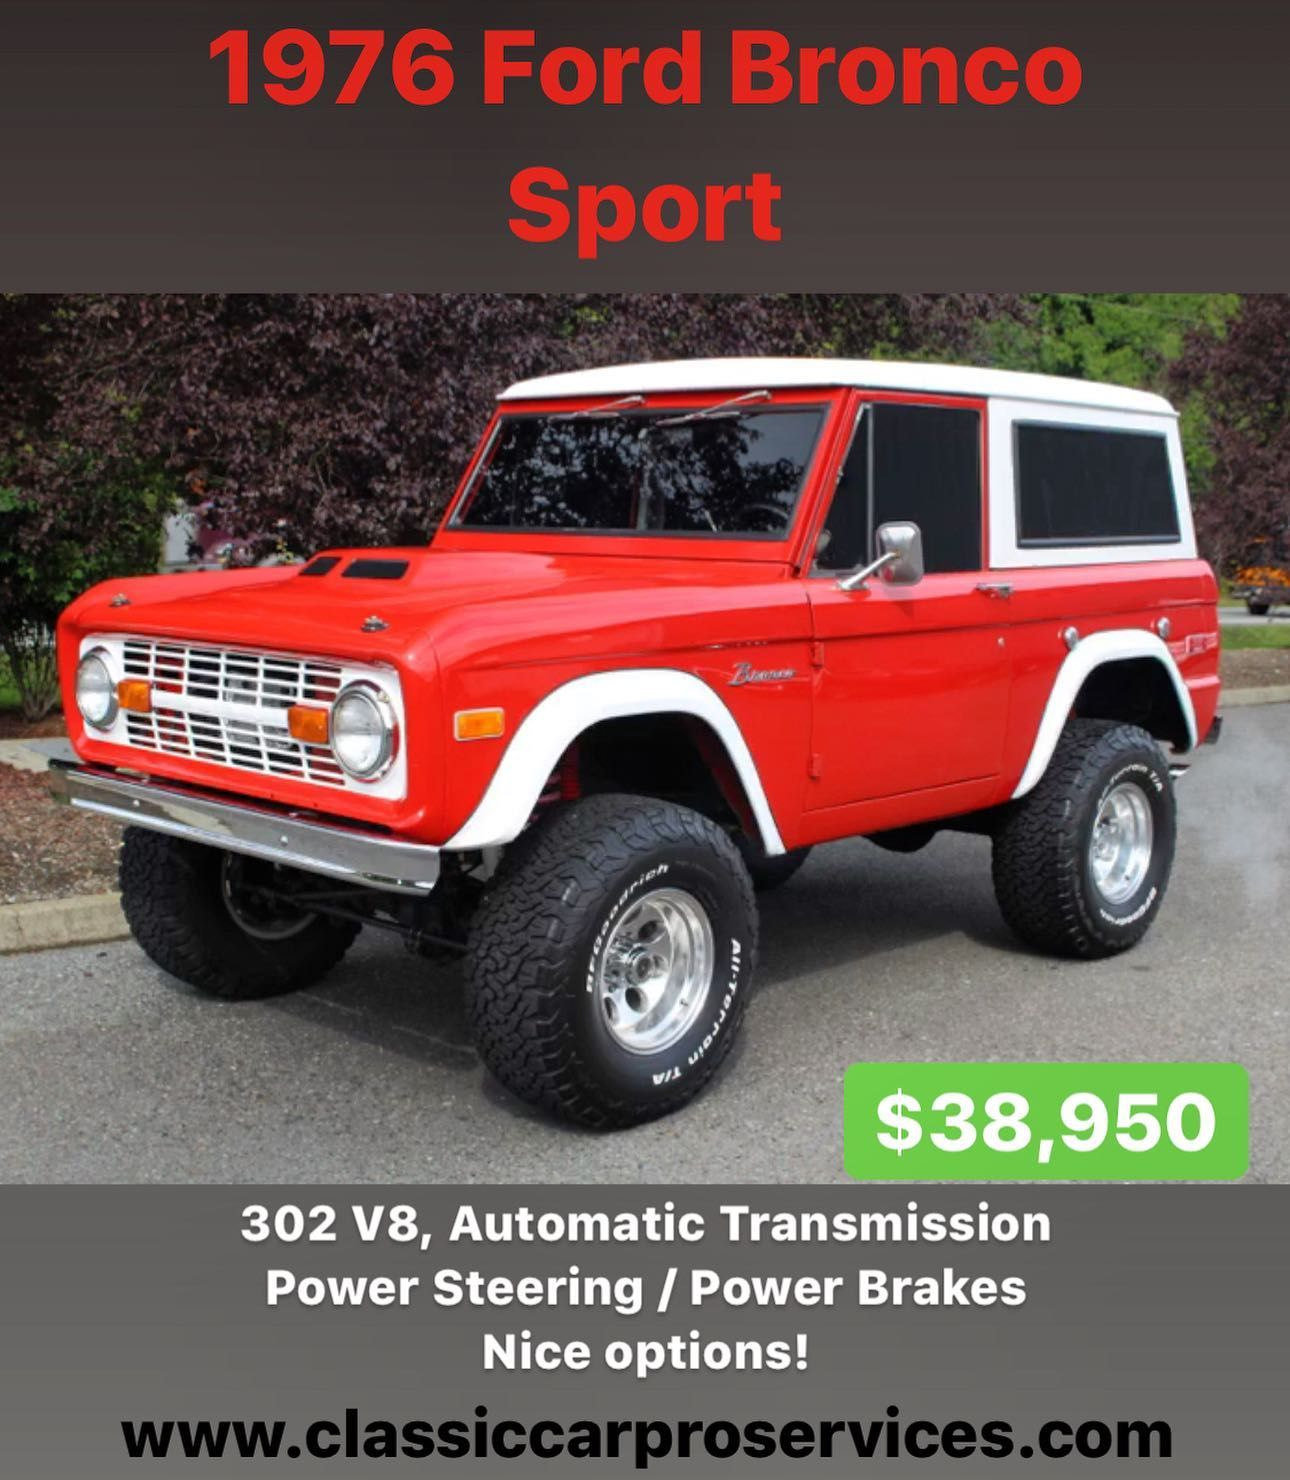 Gorgeous 1976 Ford Bronco Sport For Sale 302 V8 Factory Automatic Transmission Power Steering Power Front Disc Br In 2020 Bronco Sports Ford Bronco Classic Bronco